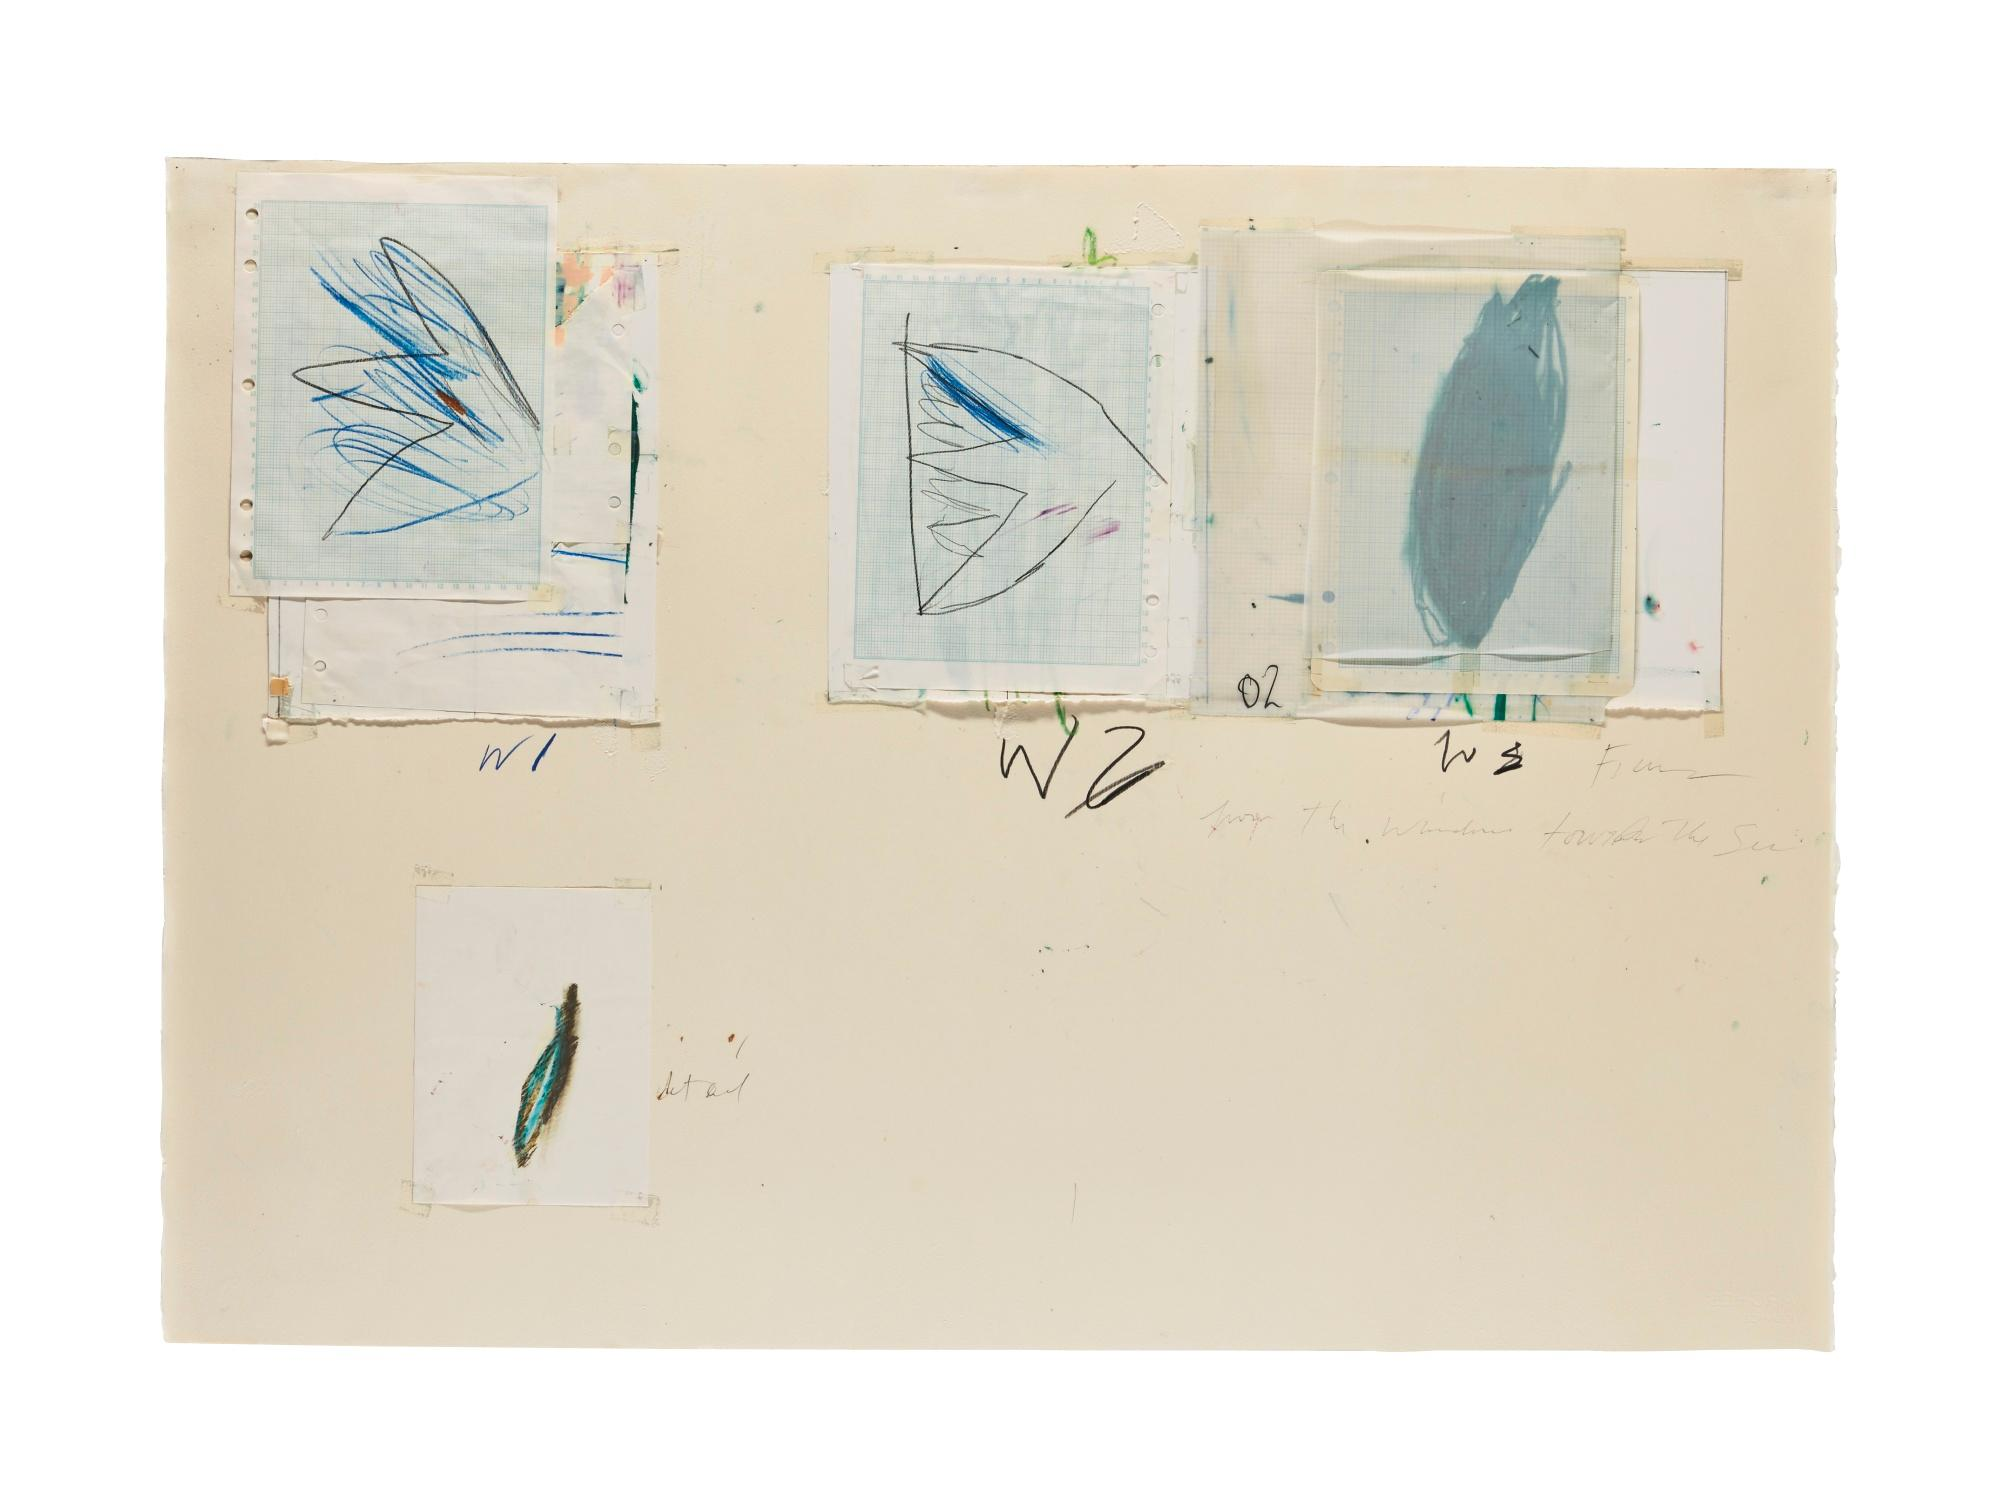 Untitled (Captiva Island, Florida) by Cy Twombly